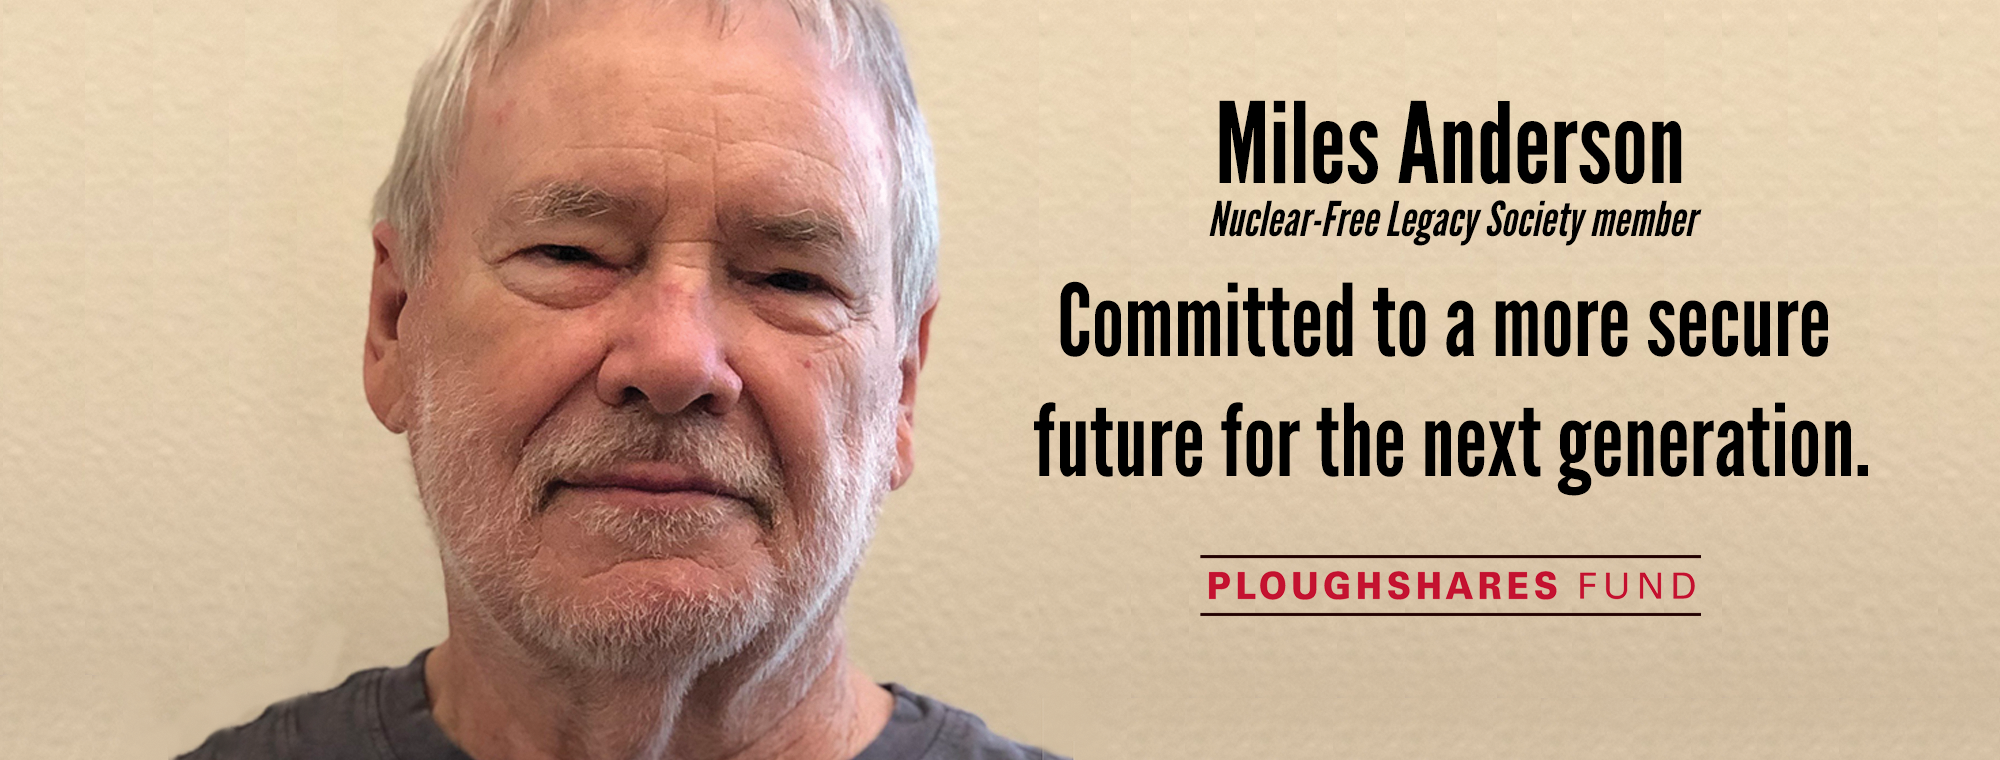 Nuclear-Free Legacy Society, Ploughshares Fund